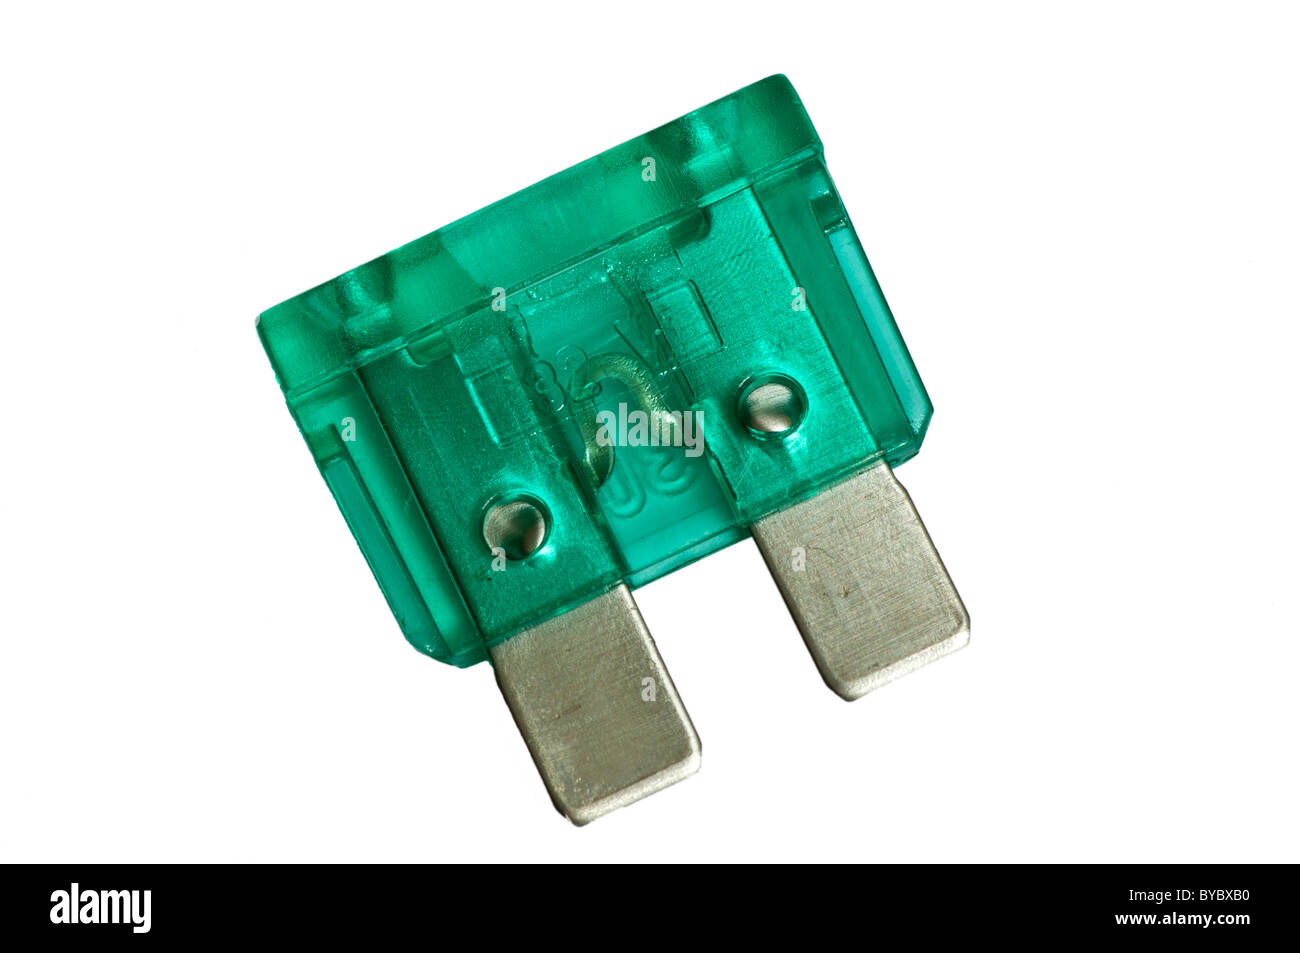 Green Spade Electric Fuse - Stock Image